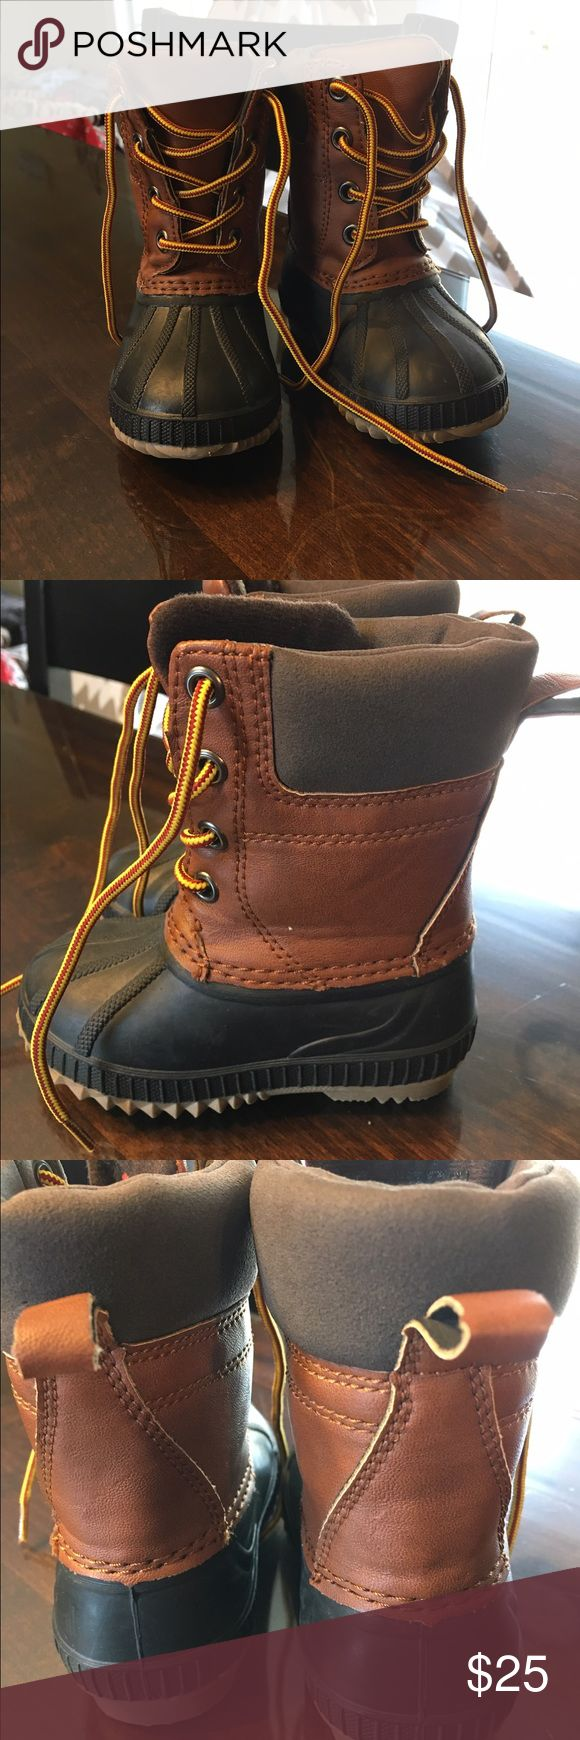 Gap Kids Duck Boots NWOT never worn size 5T/6T Gap Kids Duck Boots NWOT never worn ! Size 5T/6T Smoke free home GAP Shoes Boots